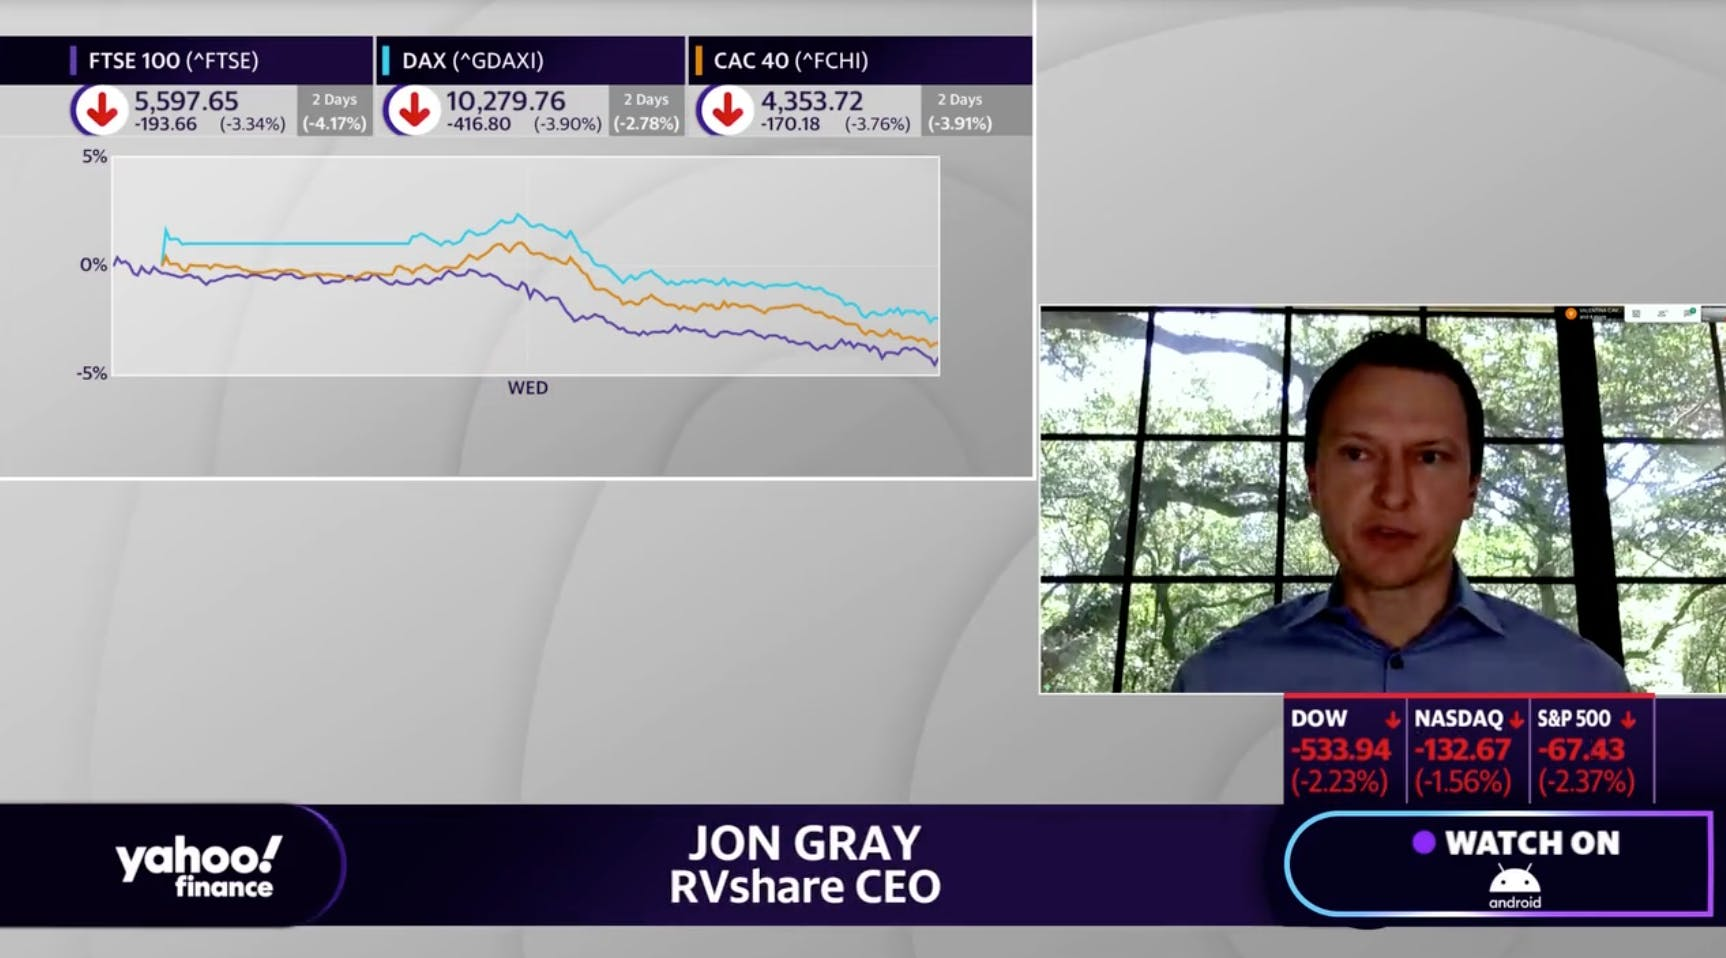 Yahoo Finance: RVshare CEO says 'we'd be leaning into a busy season booking' before COVID